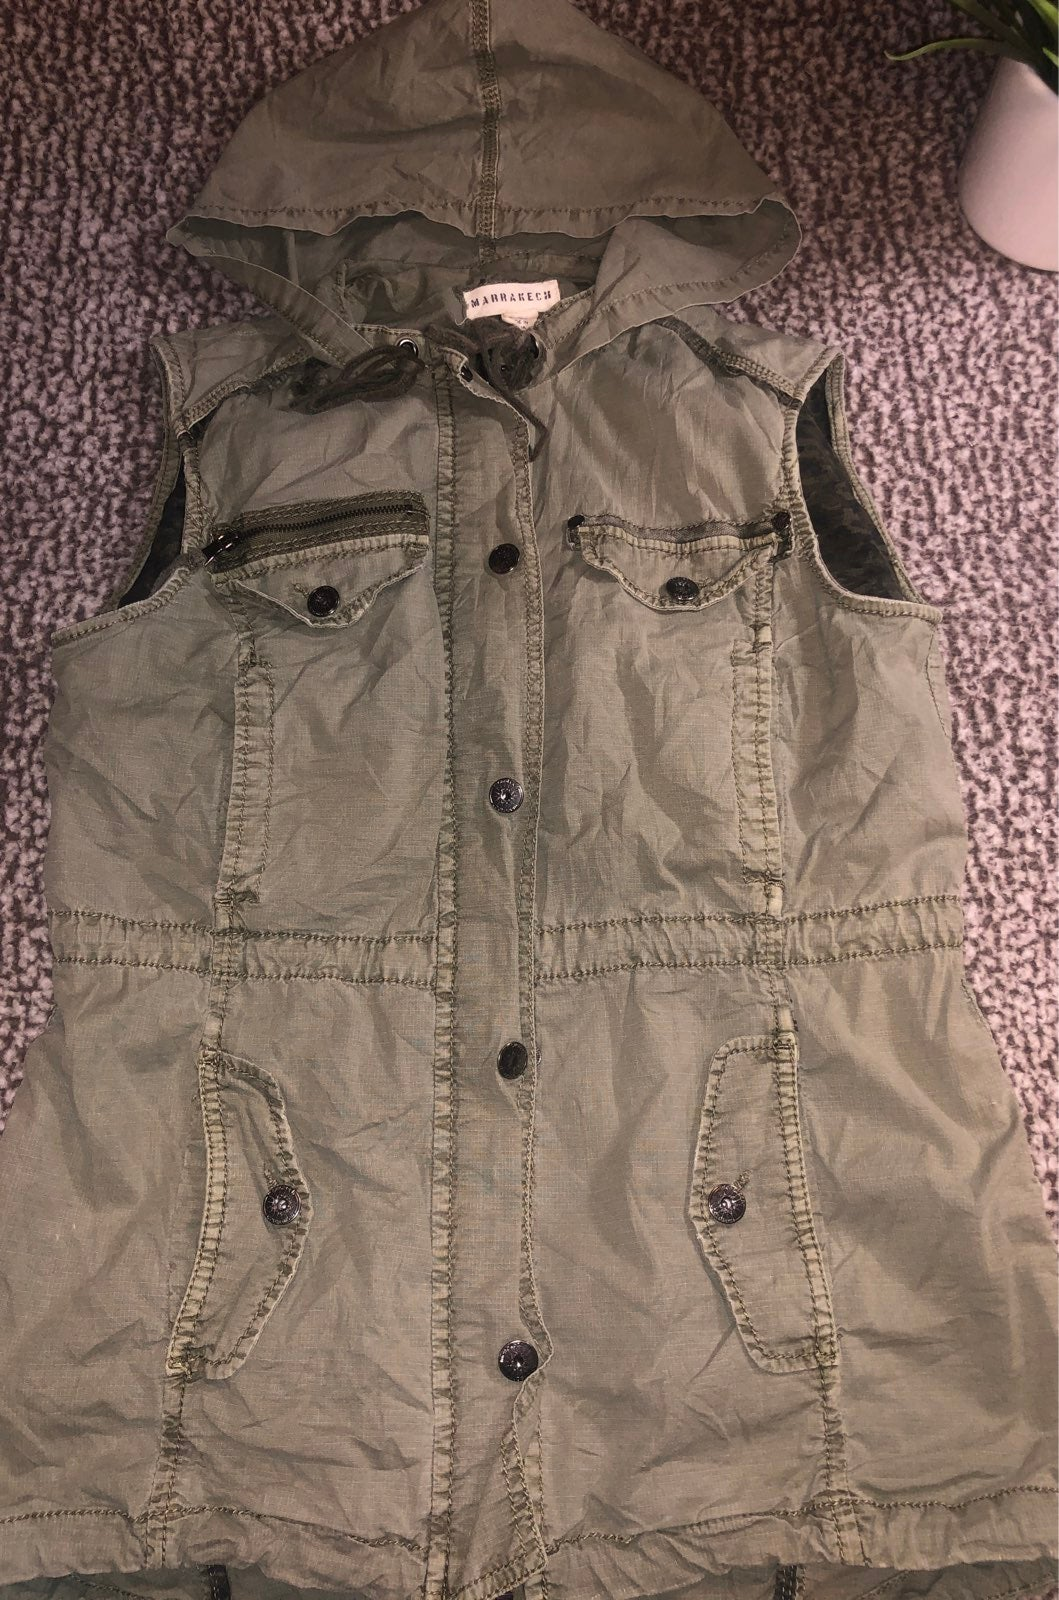 Marrakech Anthropologie Utility Vest